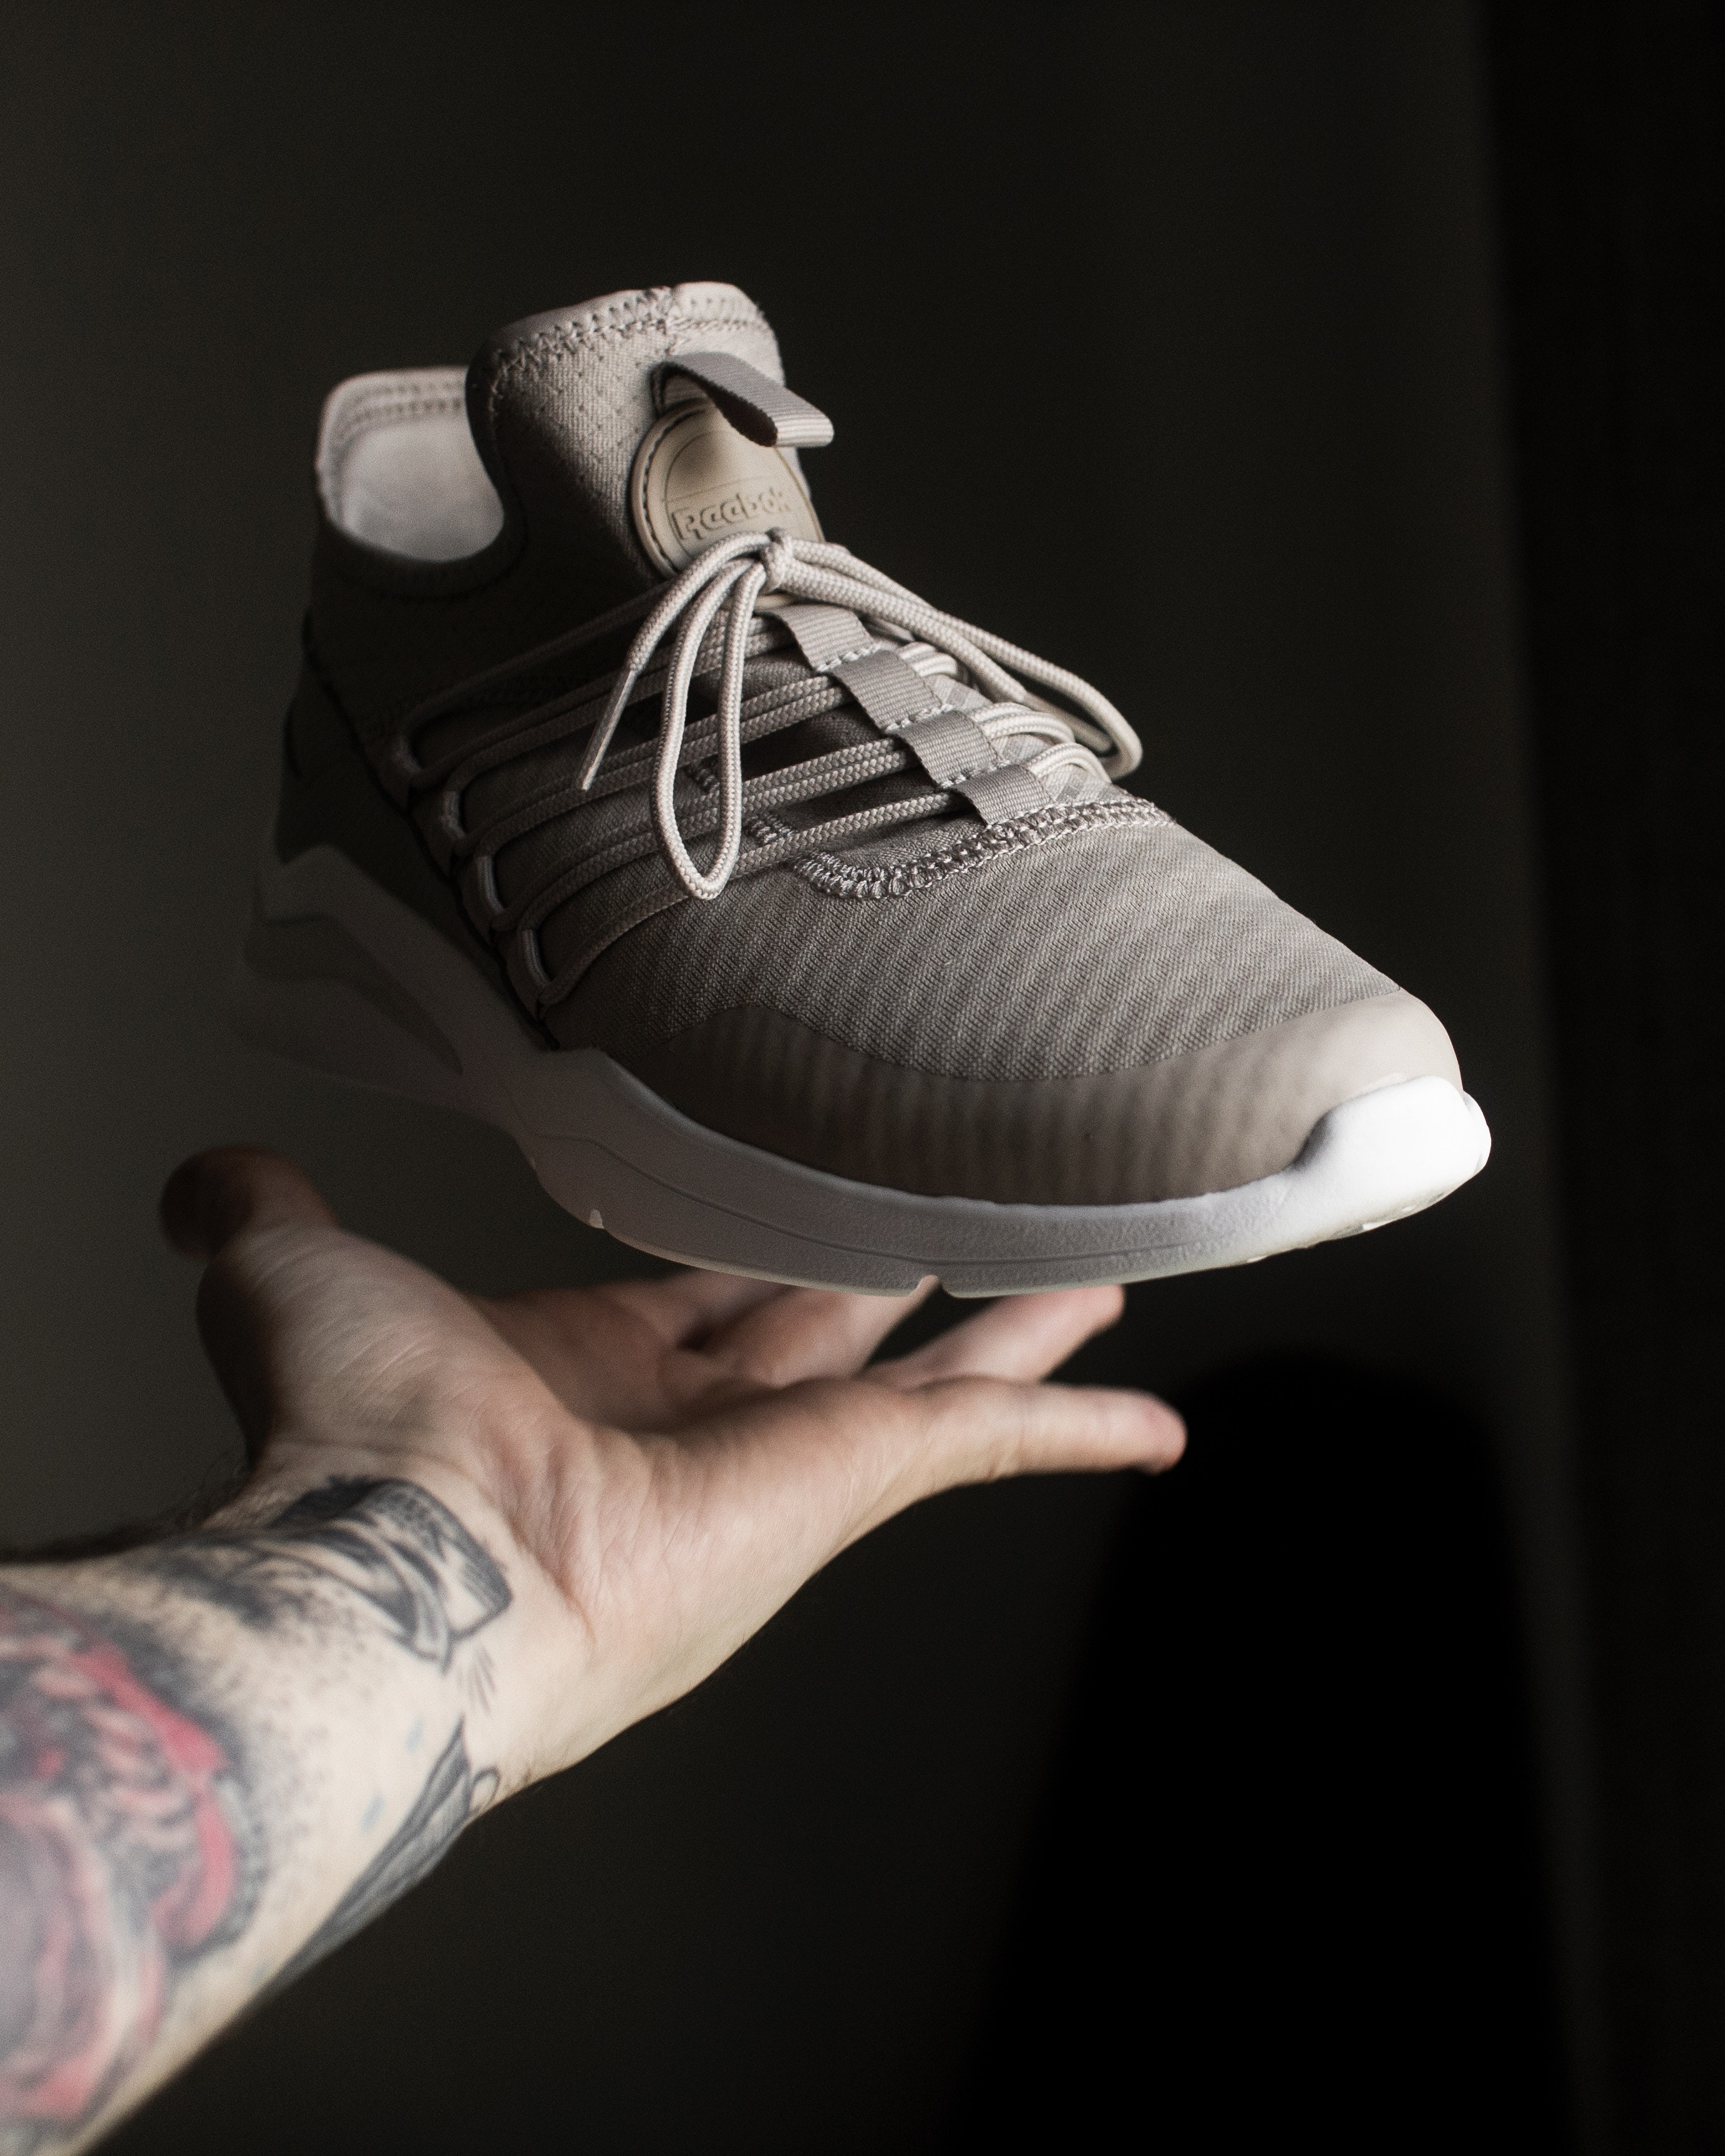 Gray and White Adidas Low-top Sneaker on Person\'s Fingers